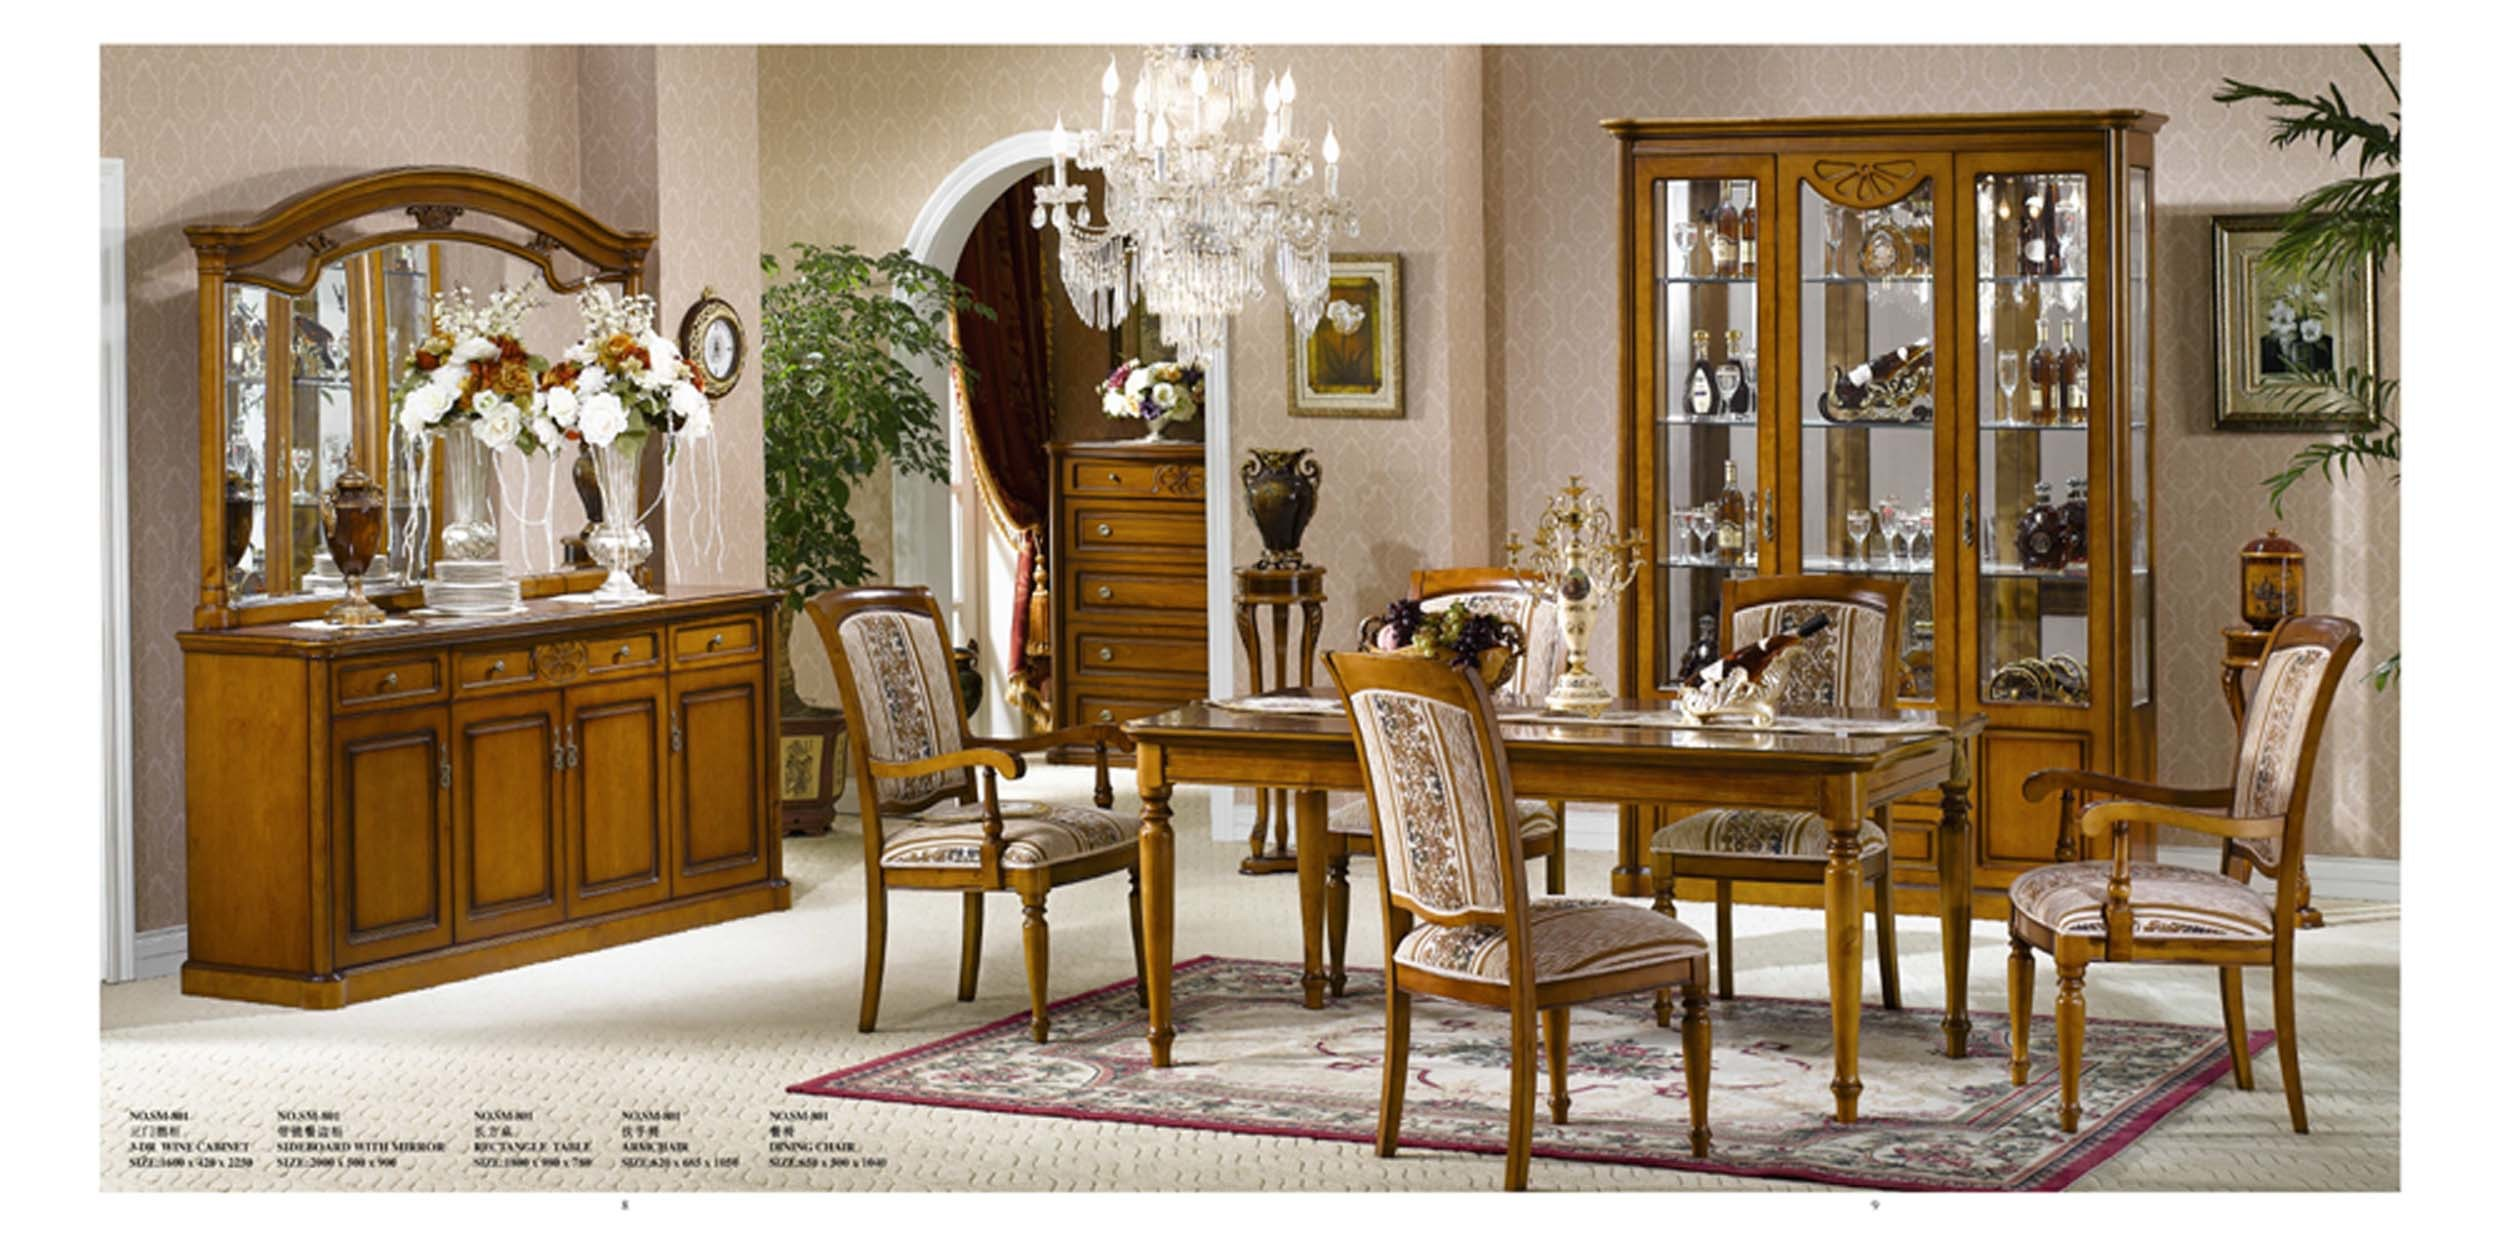 china furniture dining room furniture sm 801 china dining room furniture wood furniture buying tips the ark